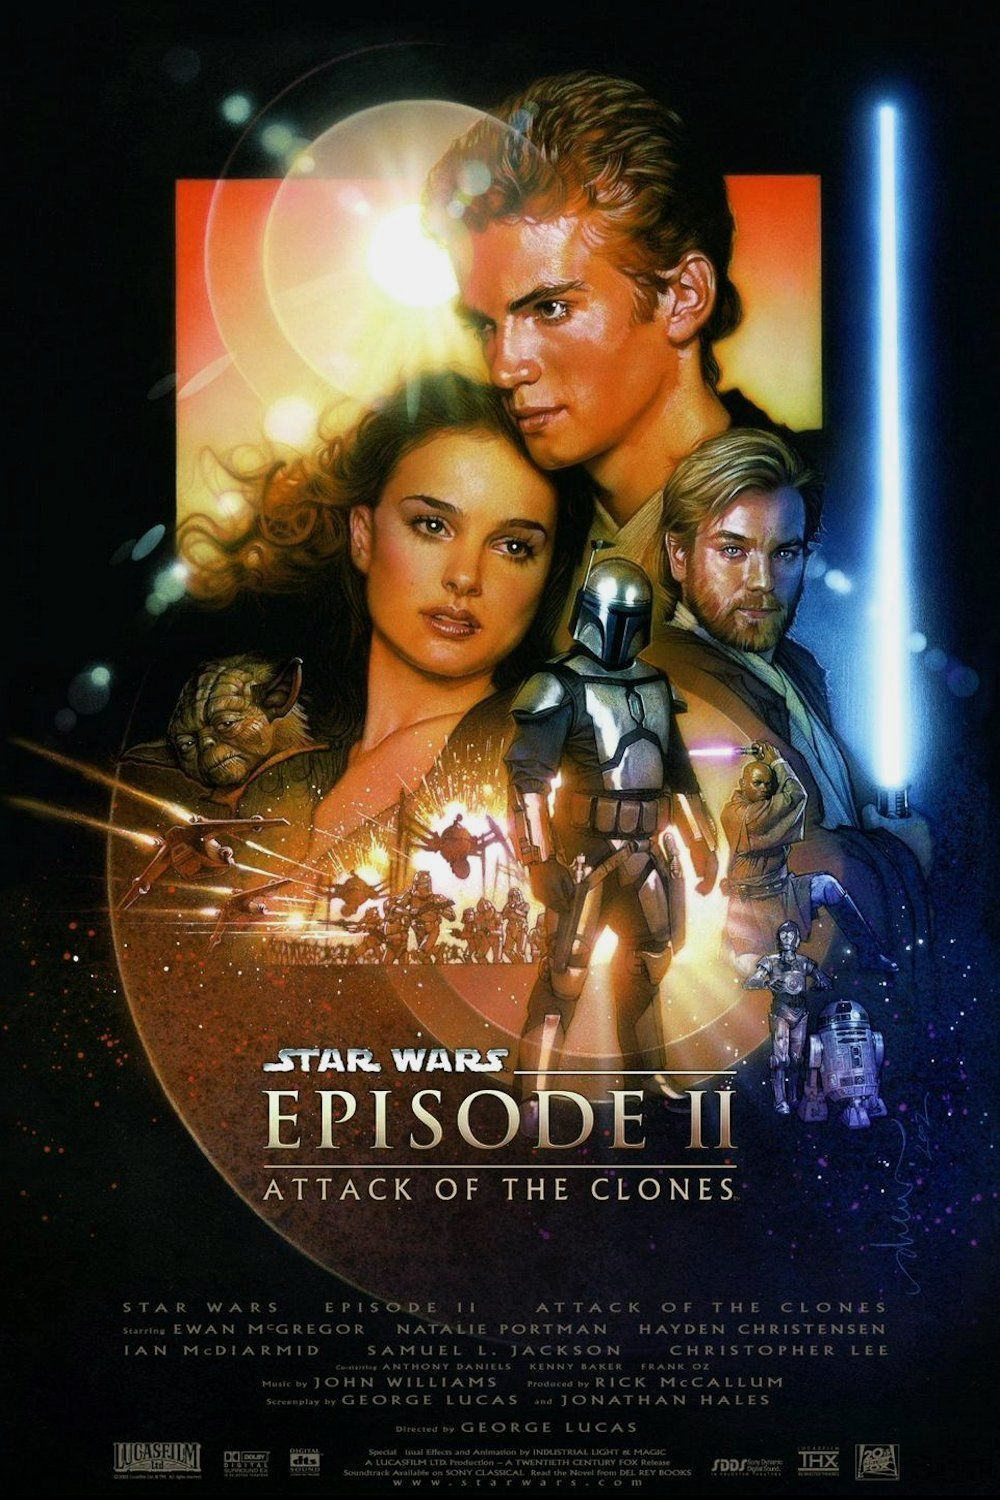 Affiche Poster star wars attaque attack clones disney lucasfilm